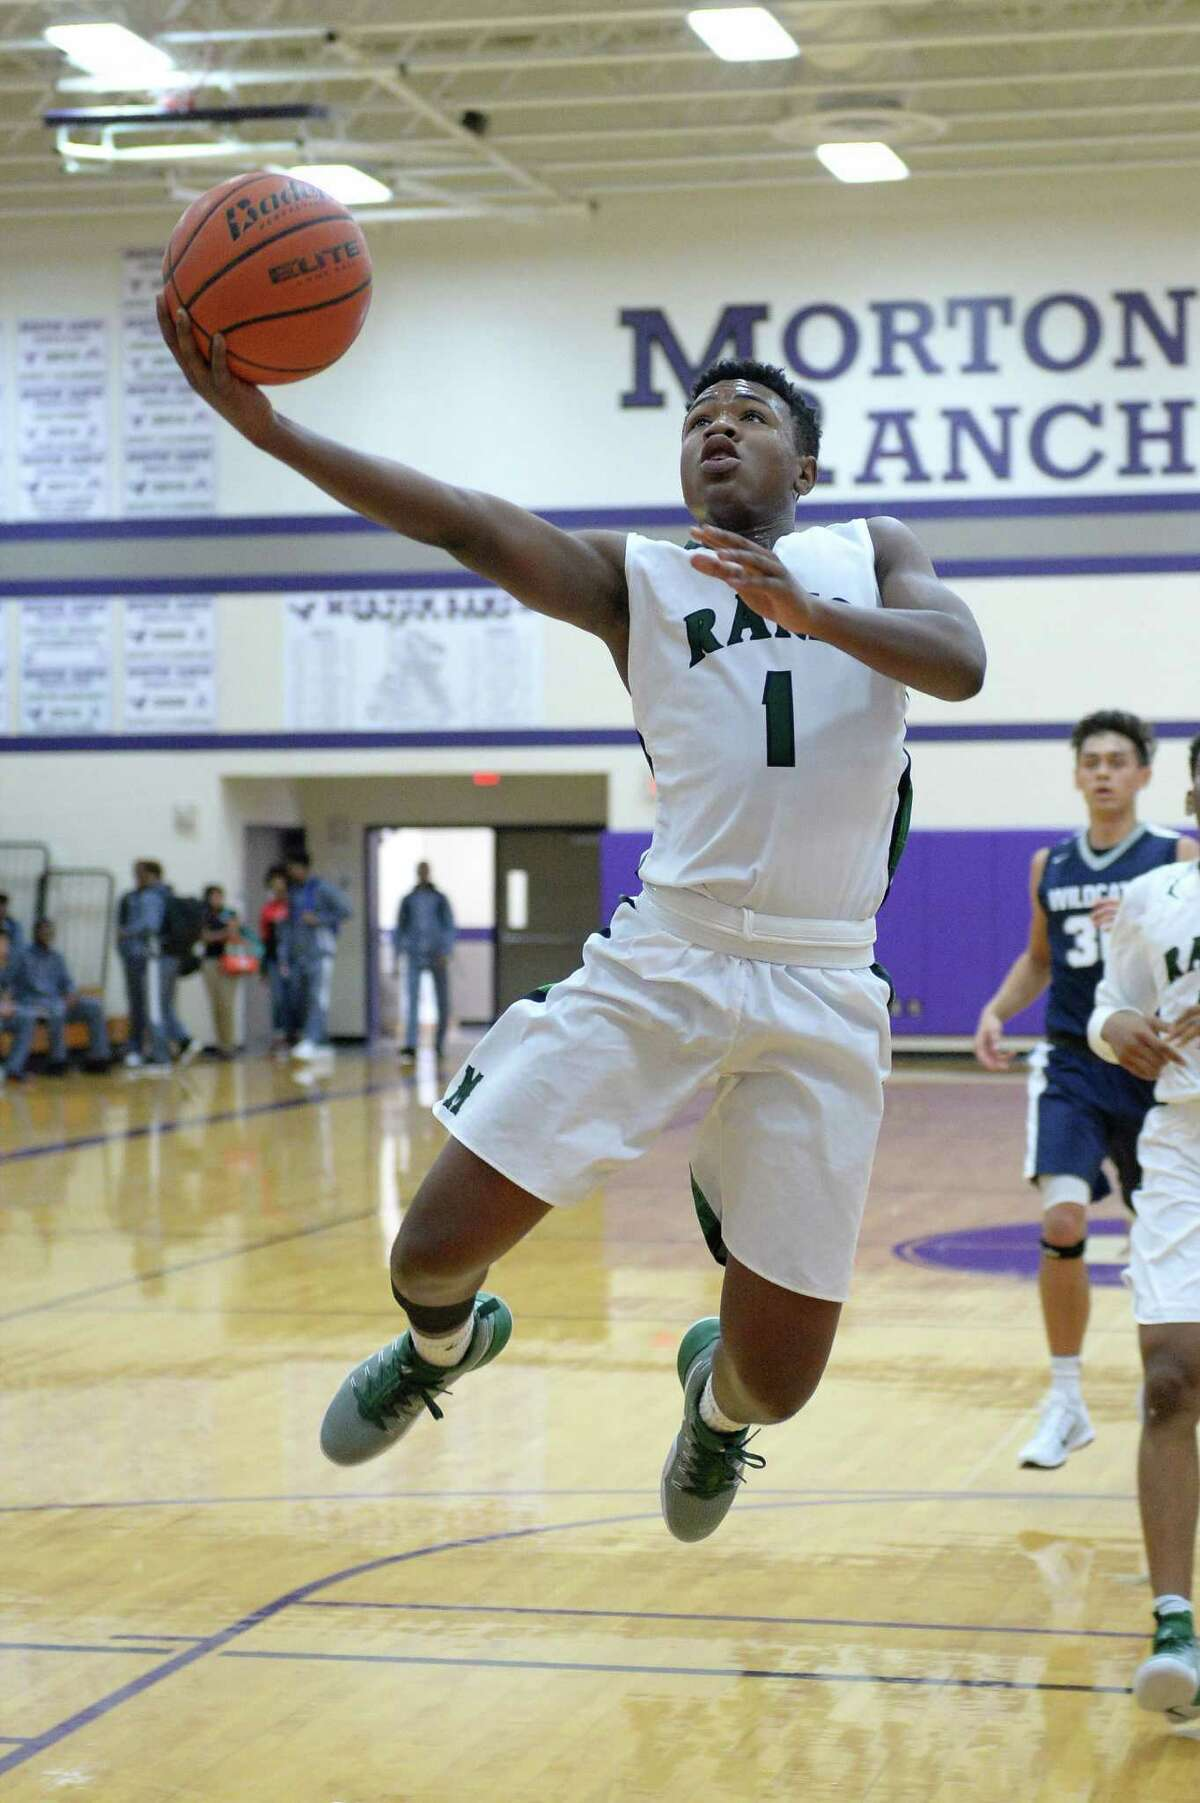 Josh Lewis (1) of Mayde Creek goes airborne for a layup in the second half of a boys basketball game between the Mayde Creek Rams and Tomball Memorial Wildcats during the Katy ISD-Phillips 66 Tournament on Thursday December 1, 2016 at Morton Ranch, Katy, TX.